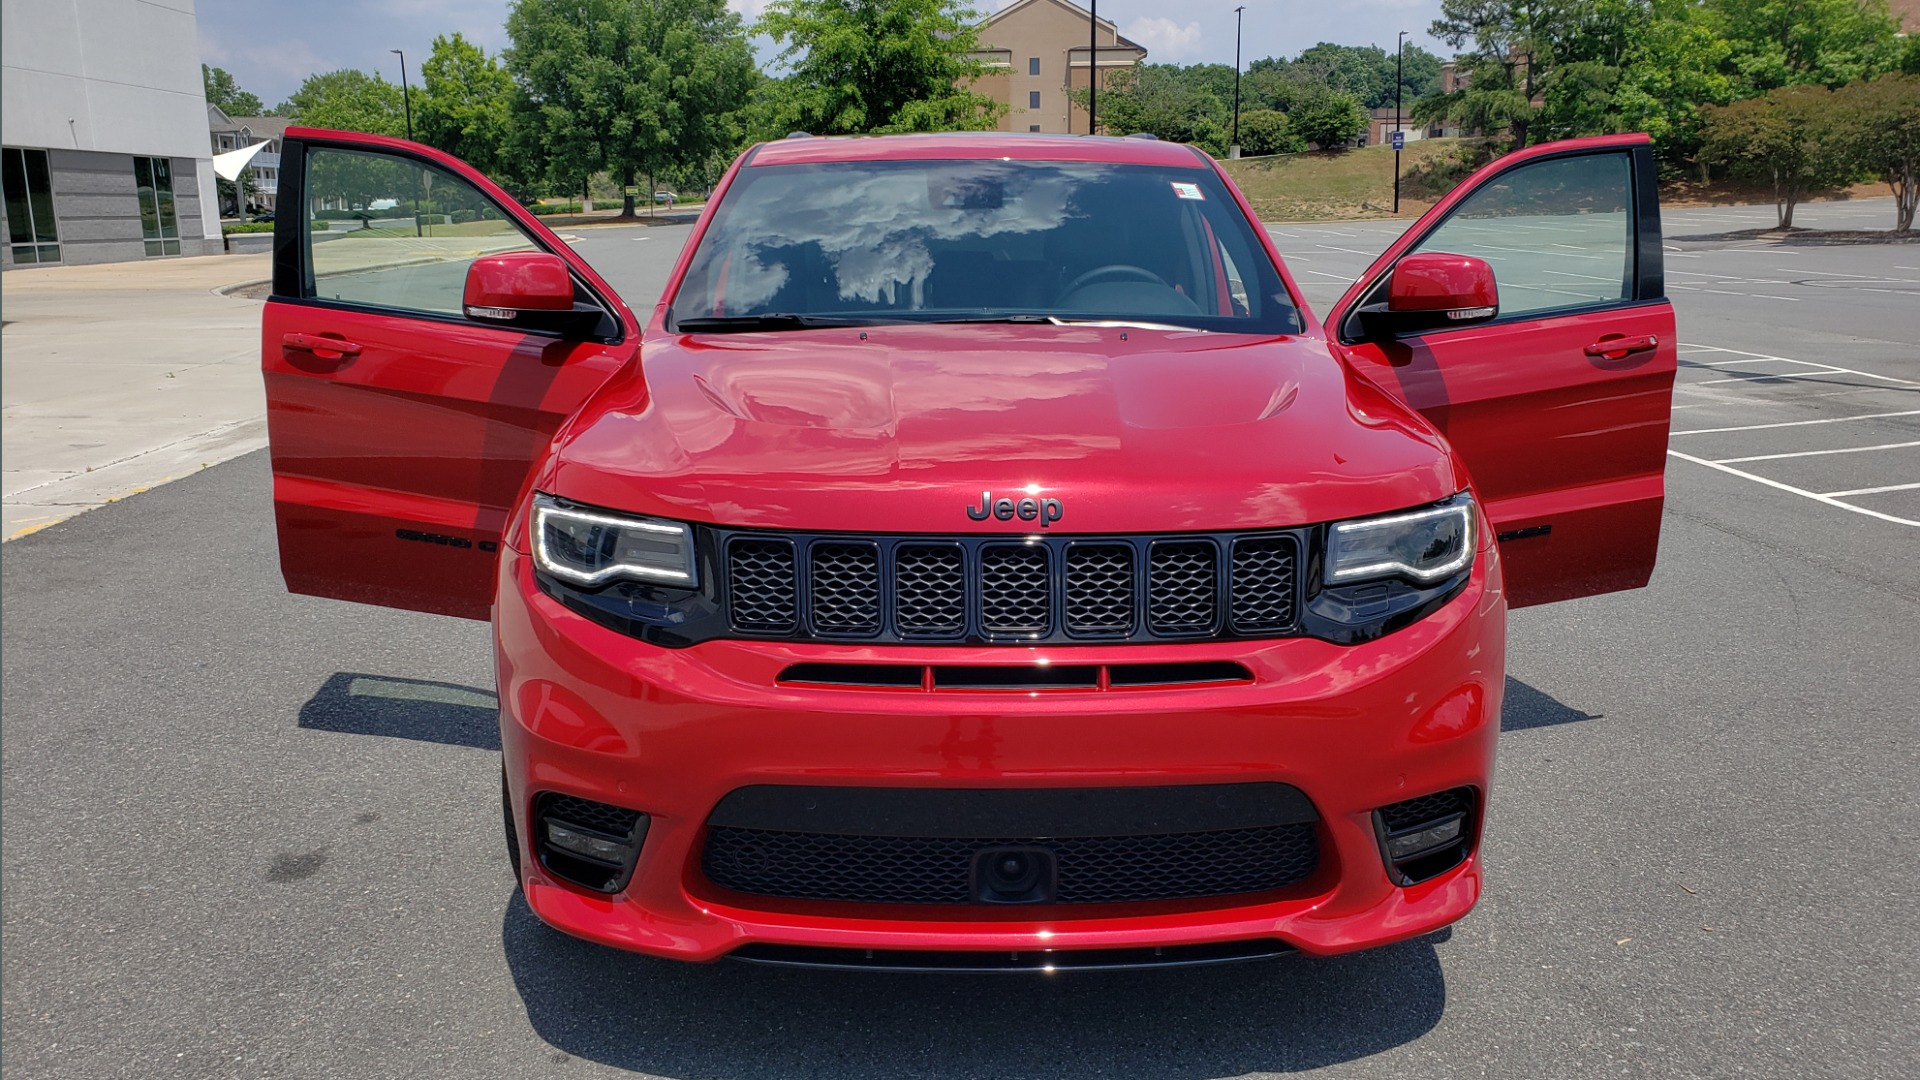 Used 2018 Jeep GRAND CHEROKEE SRT 4X4 / 6.4L HEMI (475HP) / NAV / SUNROOF / H/K SND / REARVIEW for sale Sold at Formula Imports in Charlotte NC 28227 30